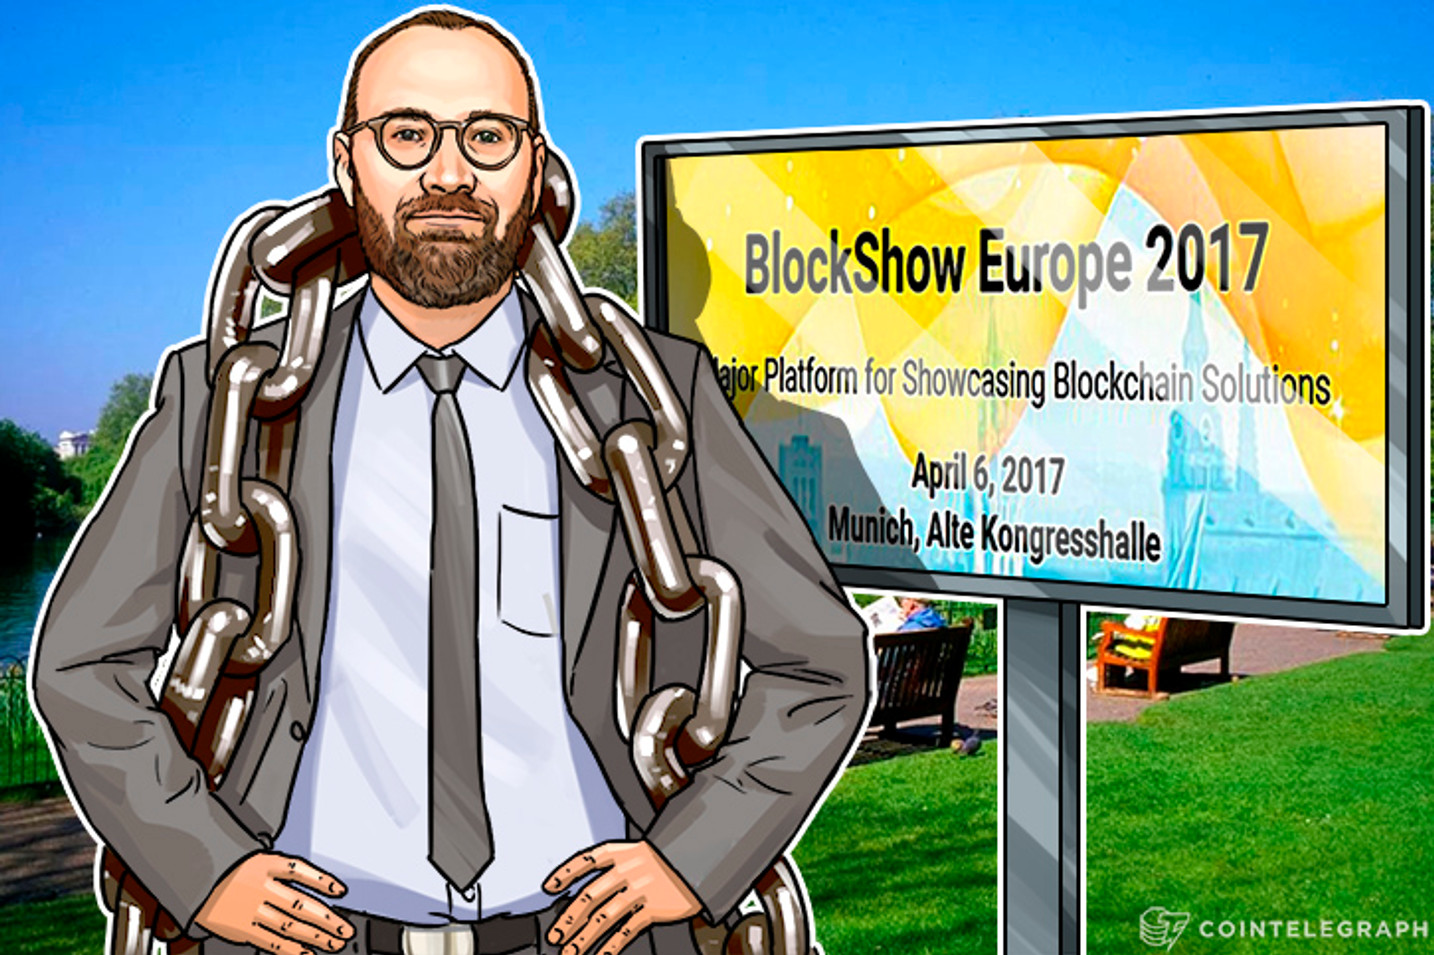 Blockchain News Recap With Marco Barulli: BlockShow Europe 2017 Special